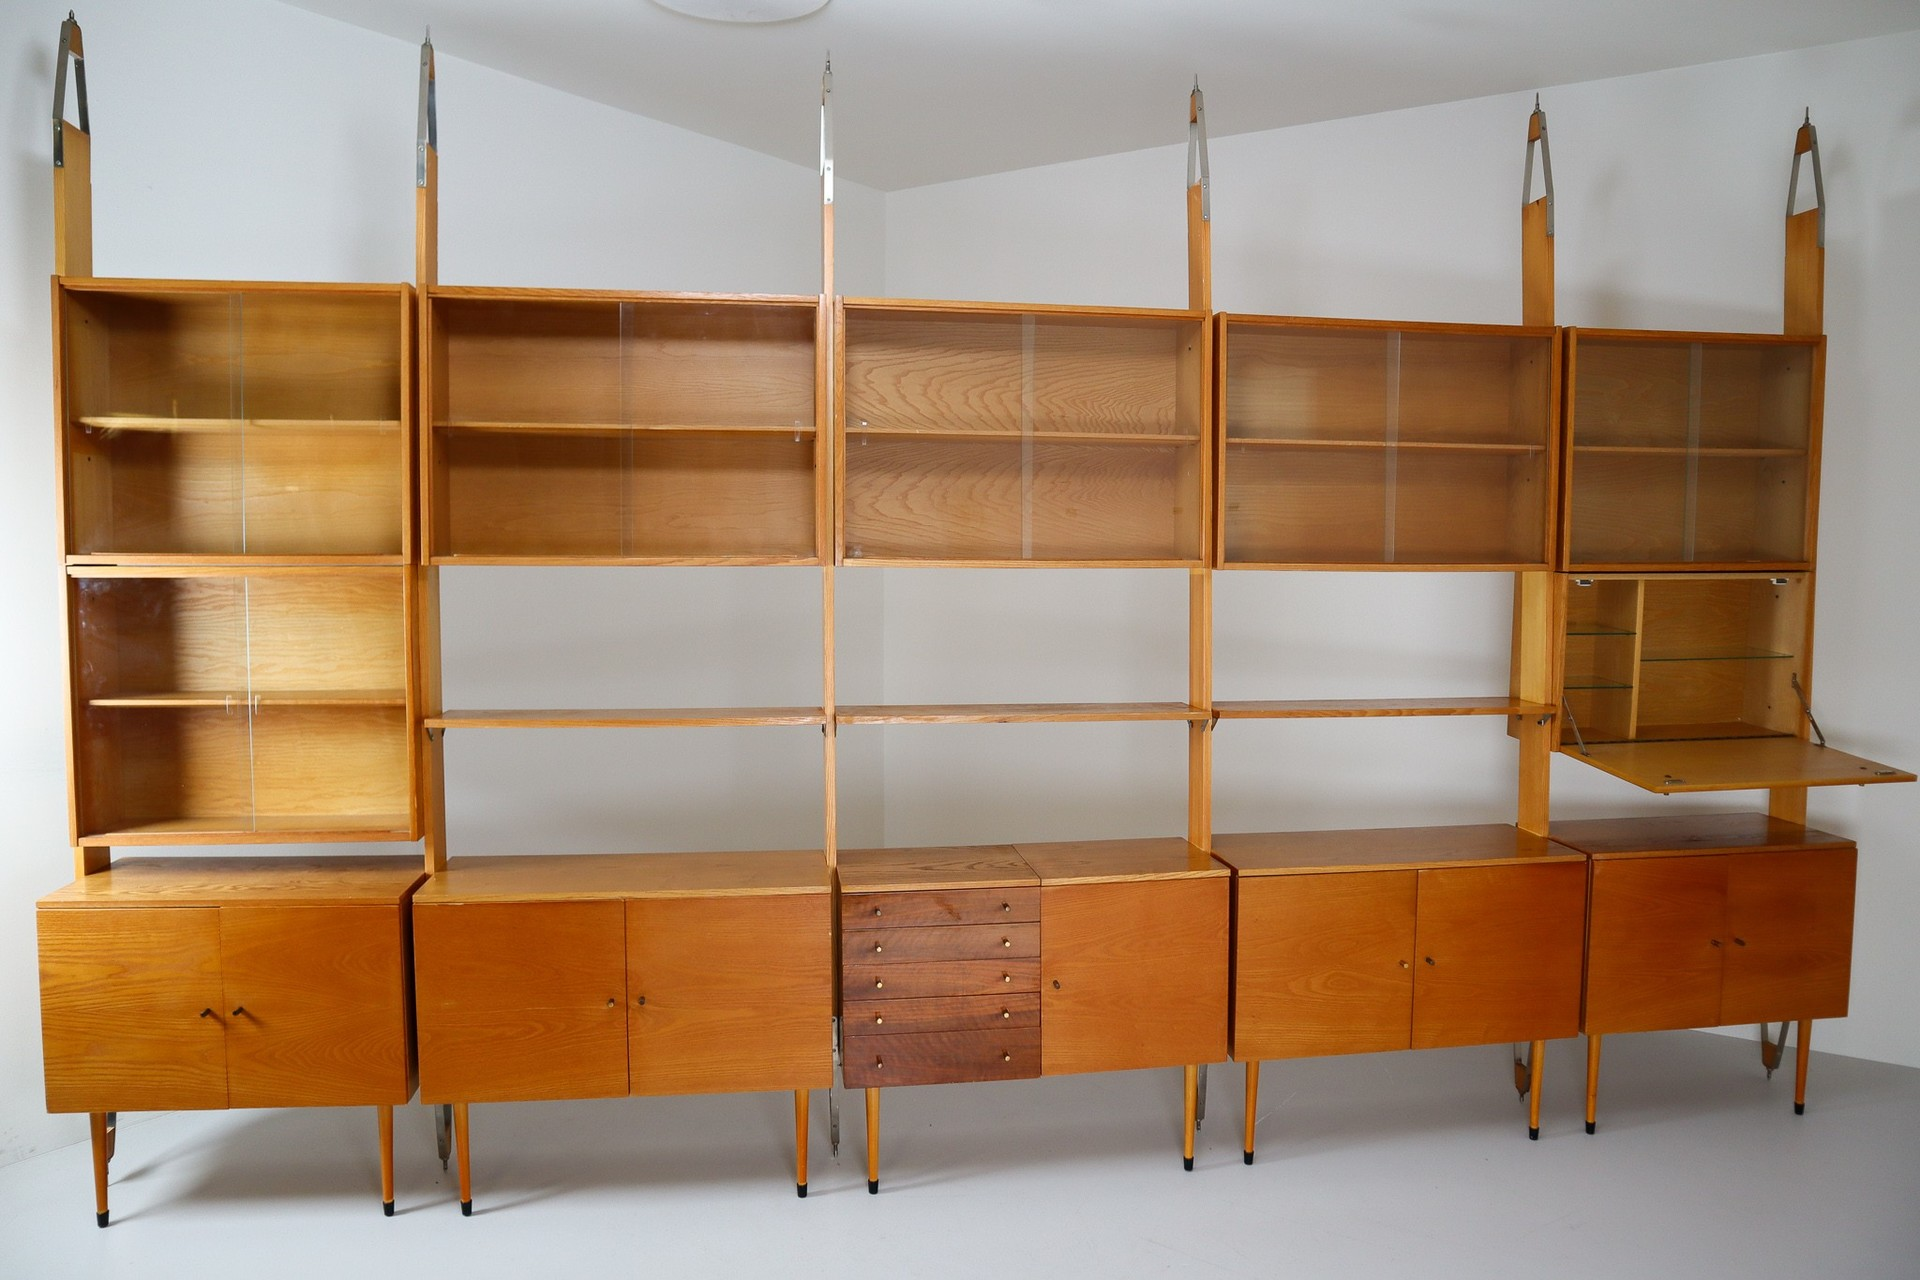 Image of: Large Mid Century Modern Wall Unit Or Bookshelf Praque 1960s Mid 20th Century Modernism Items By Category European Antiques Decorative